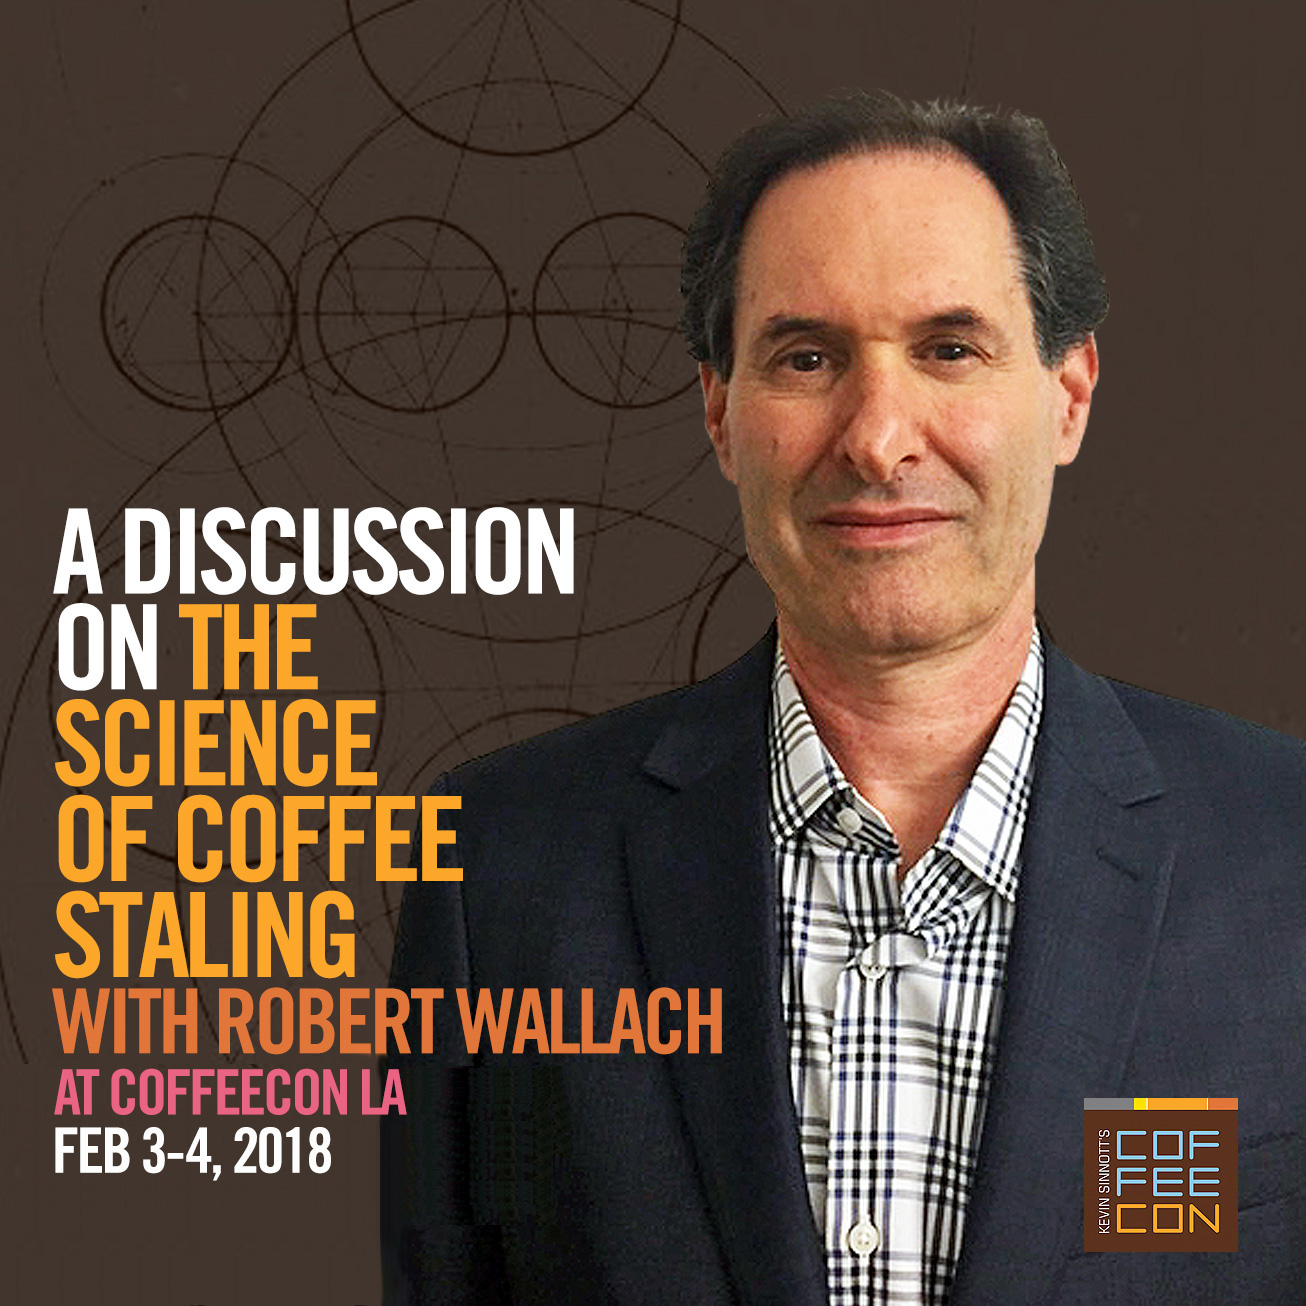 The Science of Coffee Staling with Robert Wallach